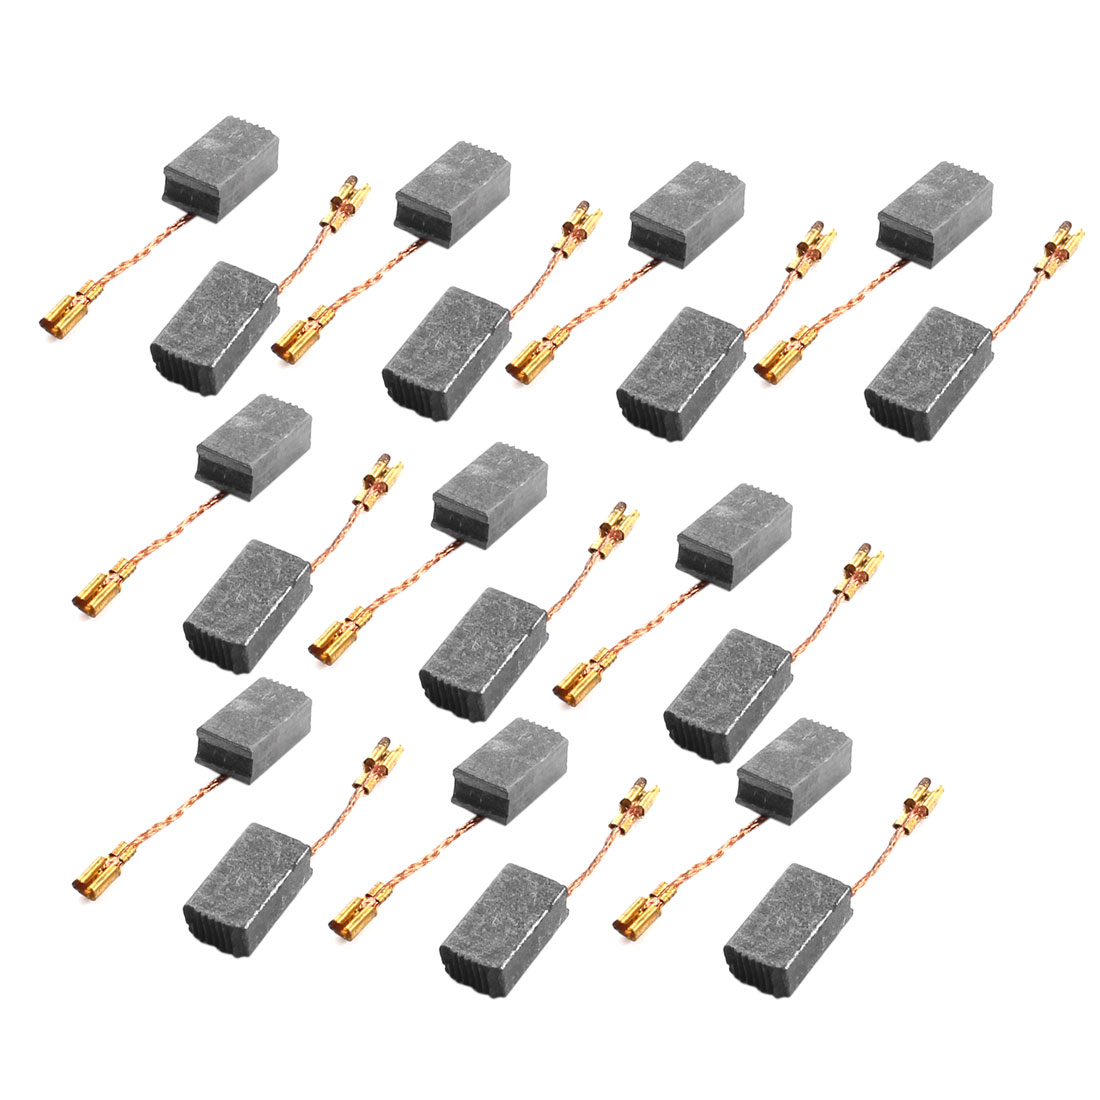 20 Pcs Electric Tool Spare Part 16mm x 9mm x 6mm Motor Carbon Brush